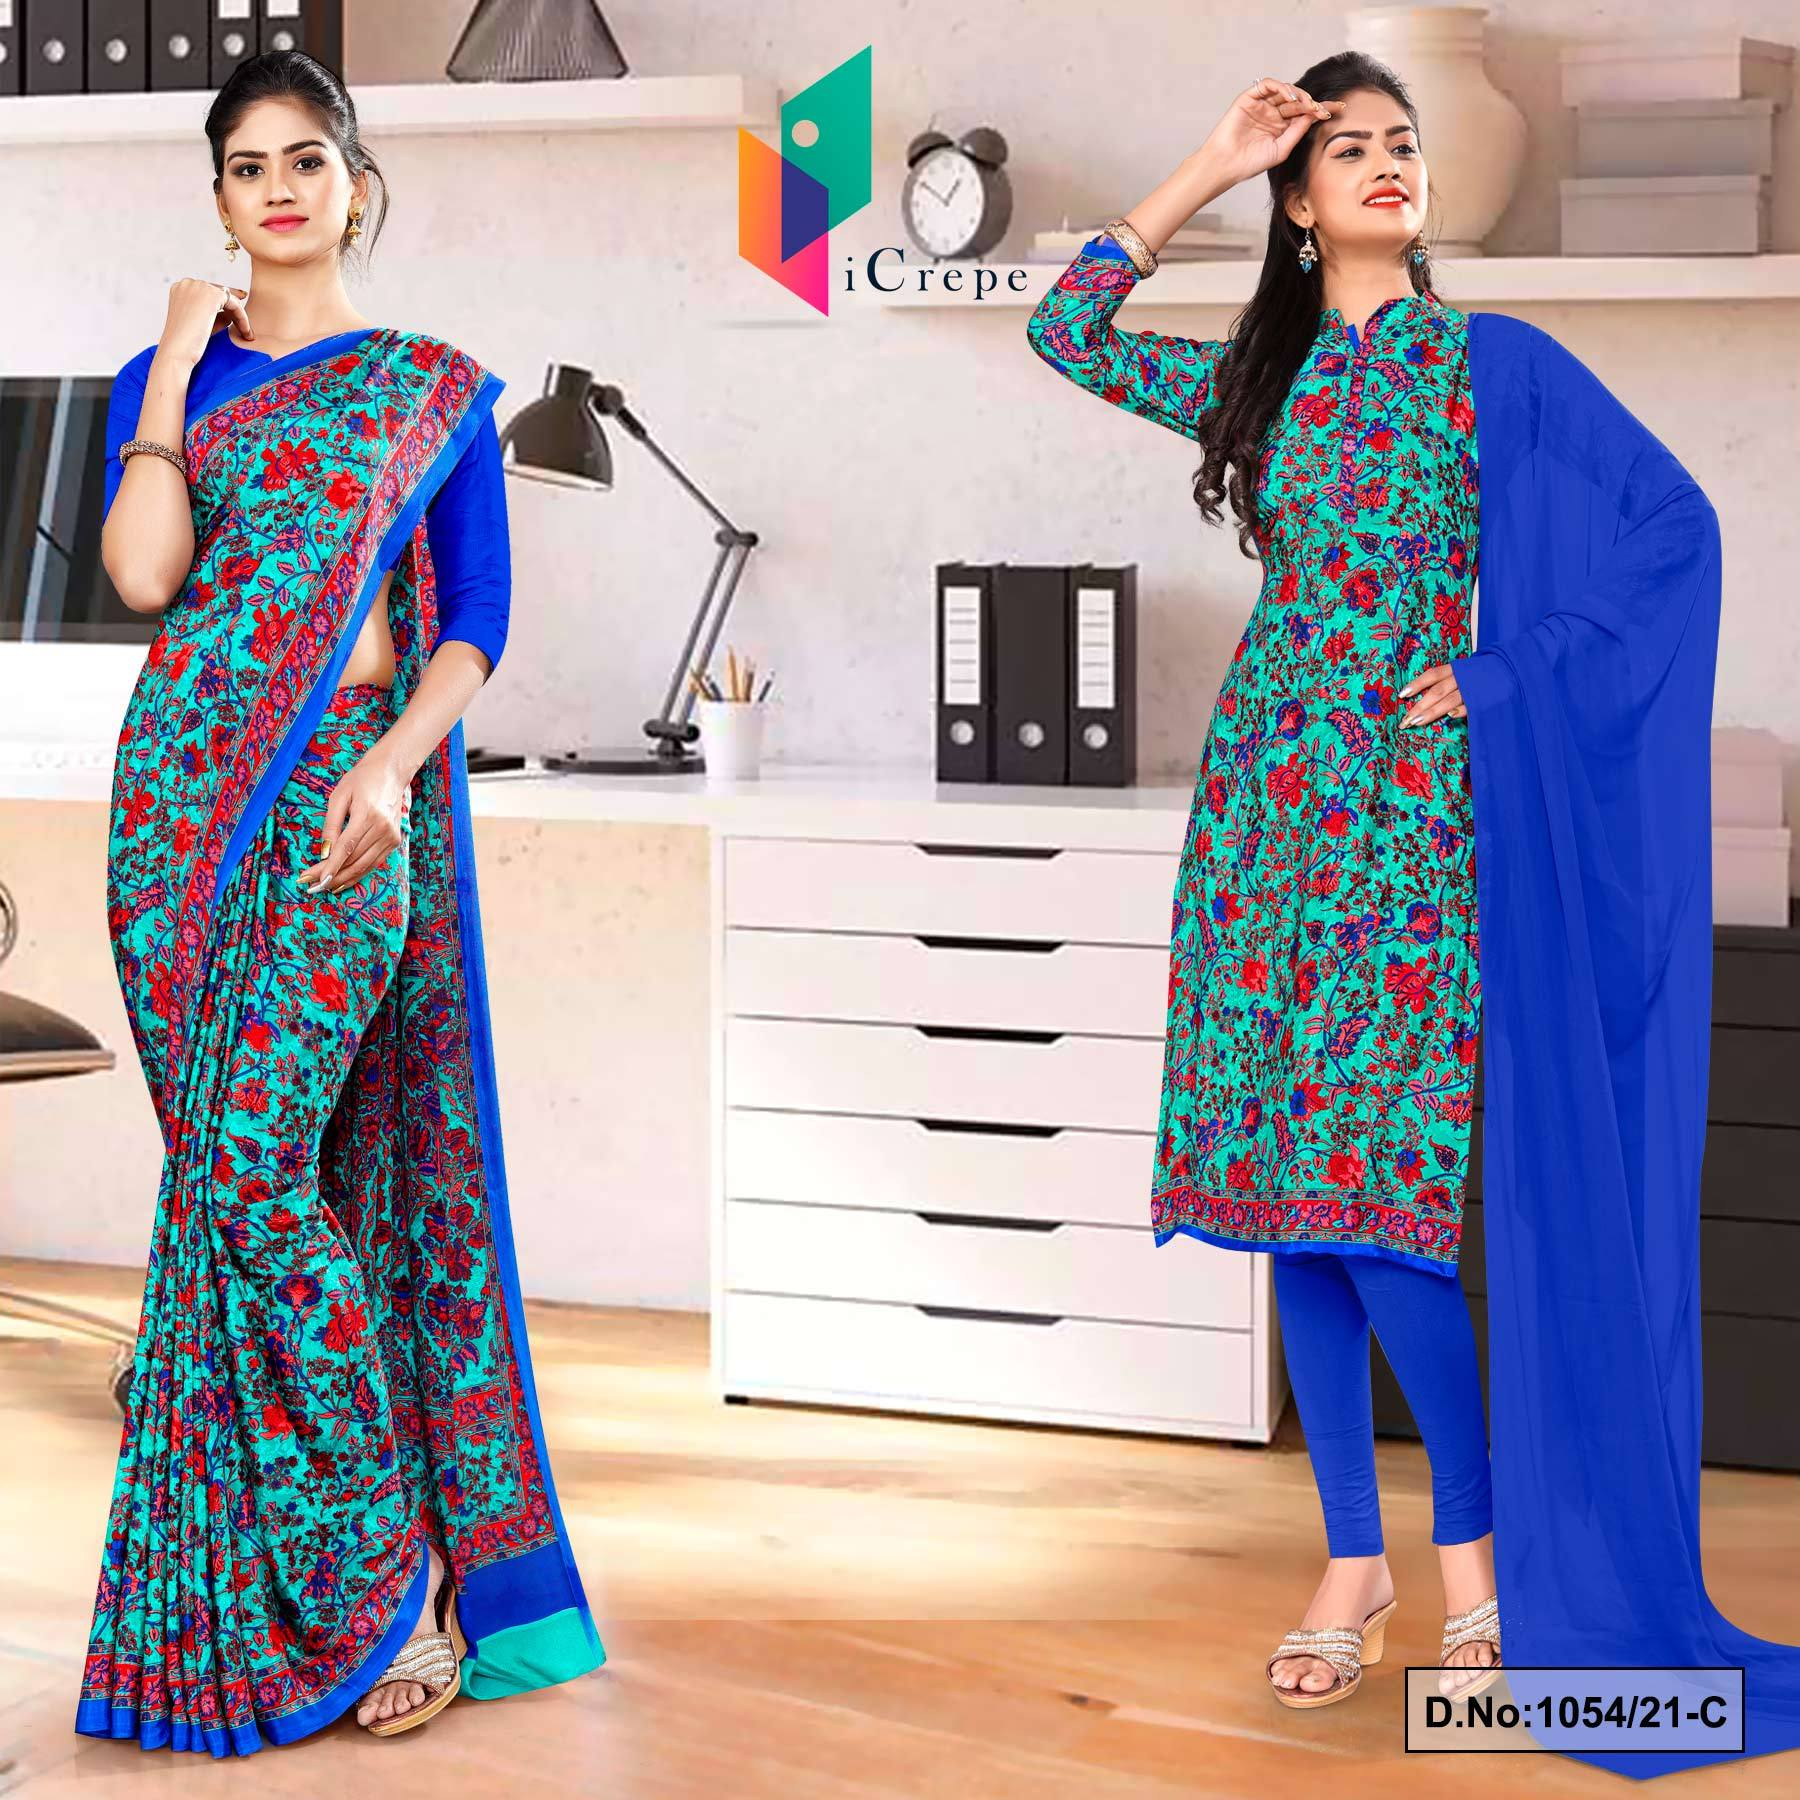 Sea Green Blue Flower Print Premium Italian Silk Crepe Uniform Saree Salwar Combo for Receptionist